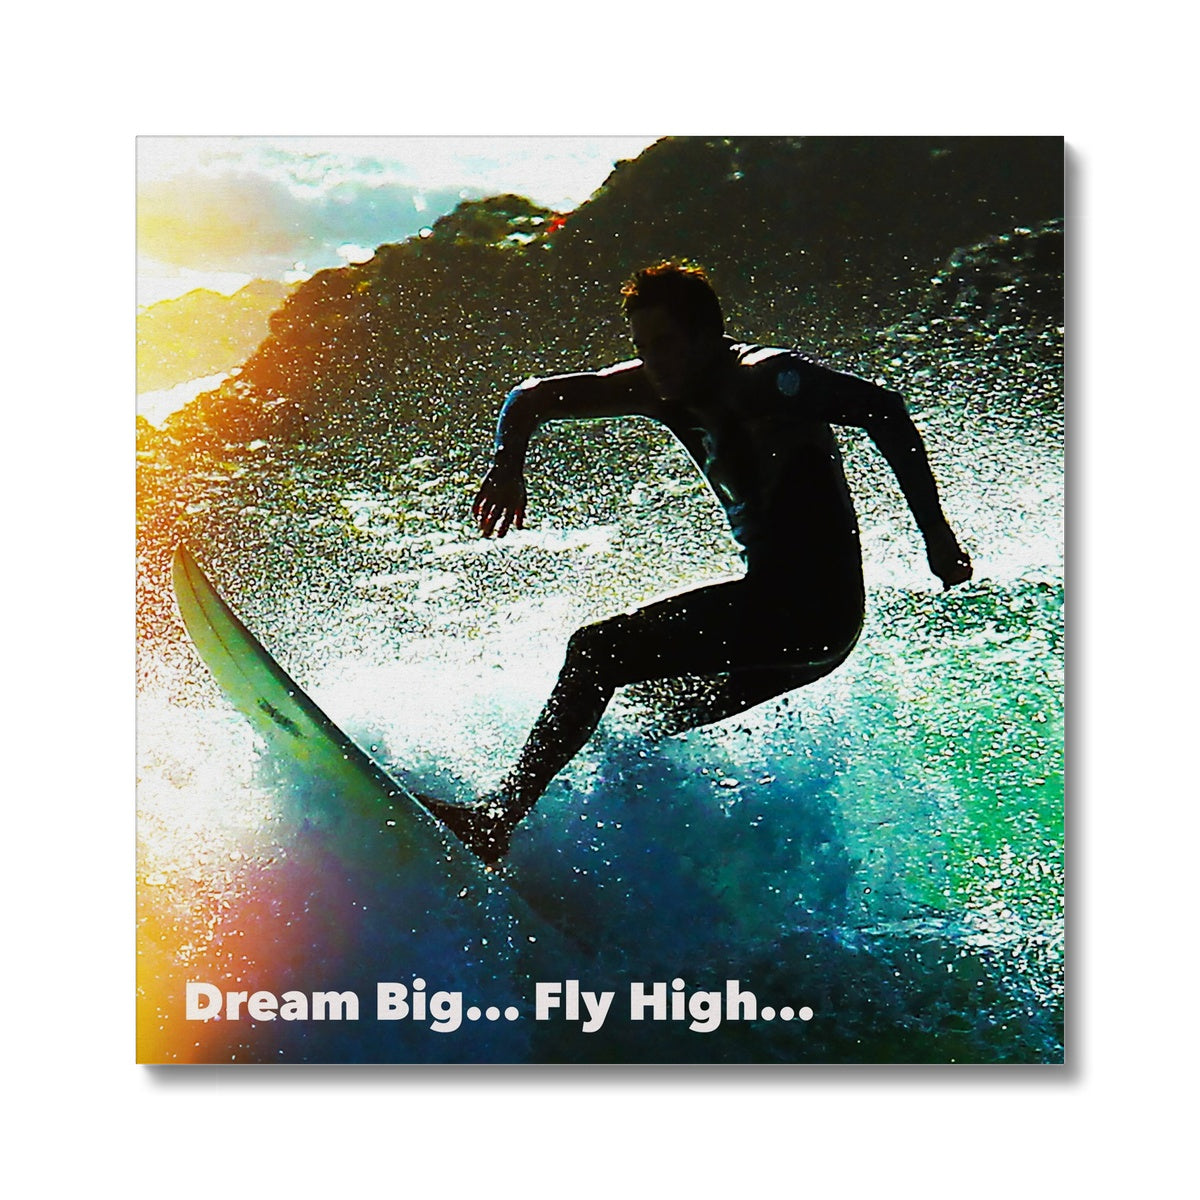 Dream Big... Fly High - Surf - Canvas